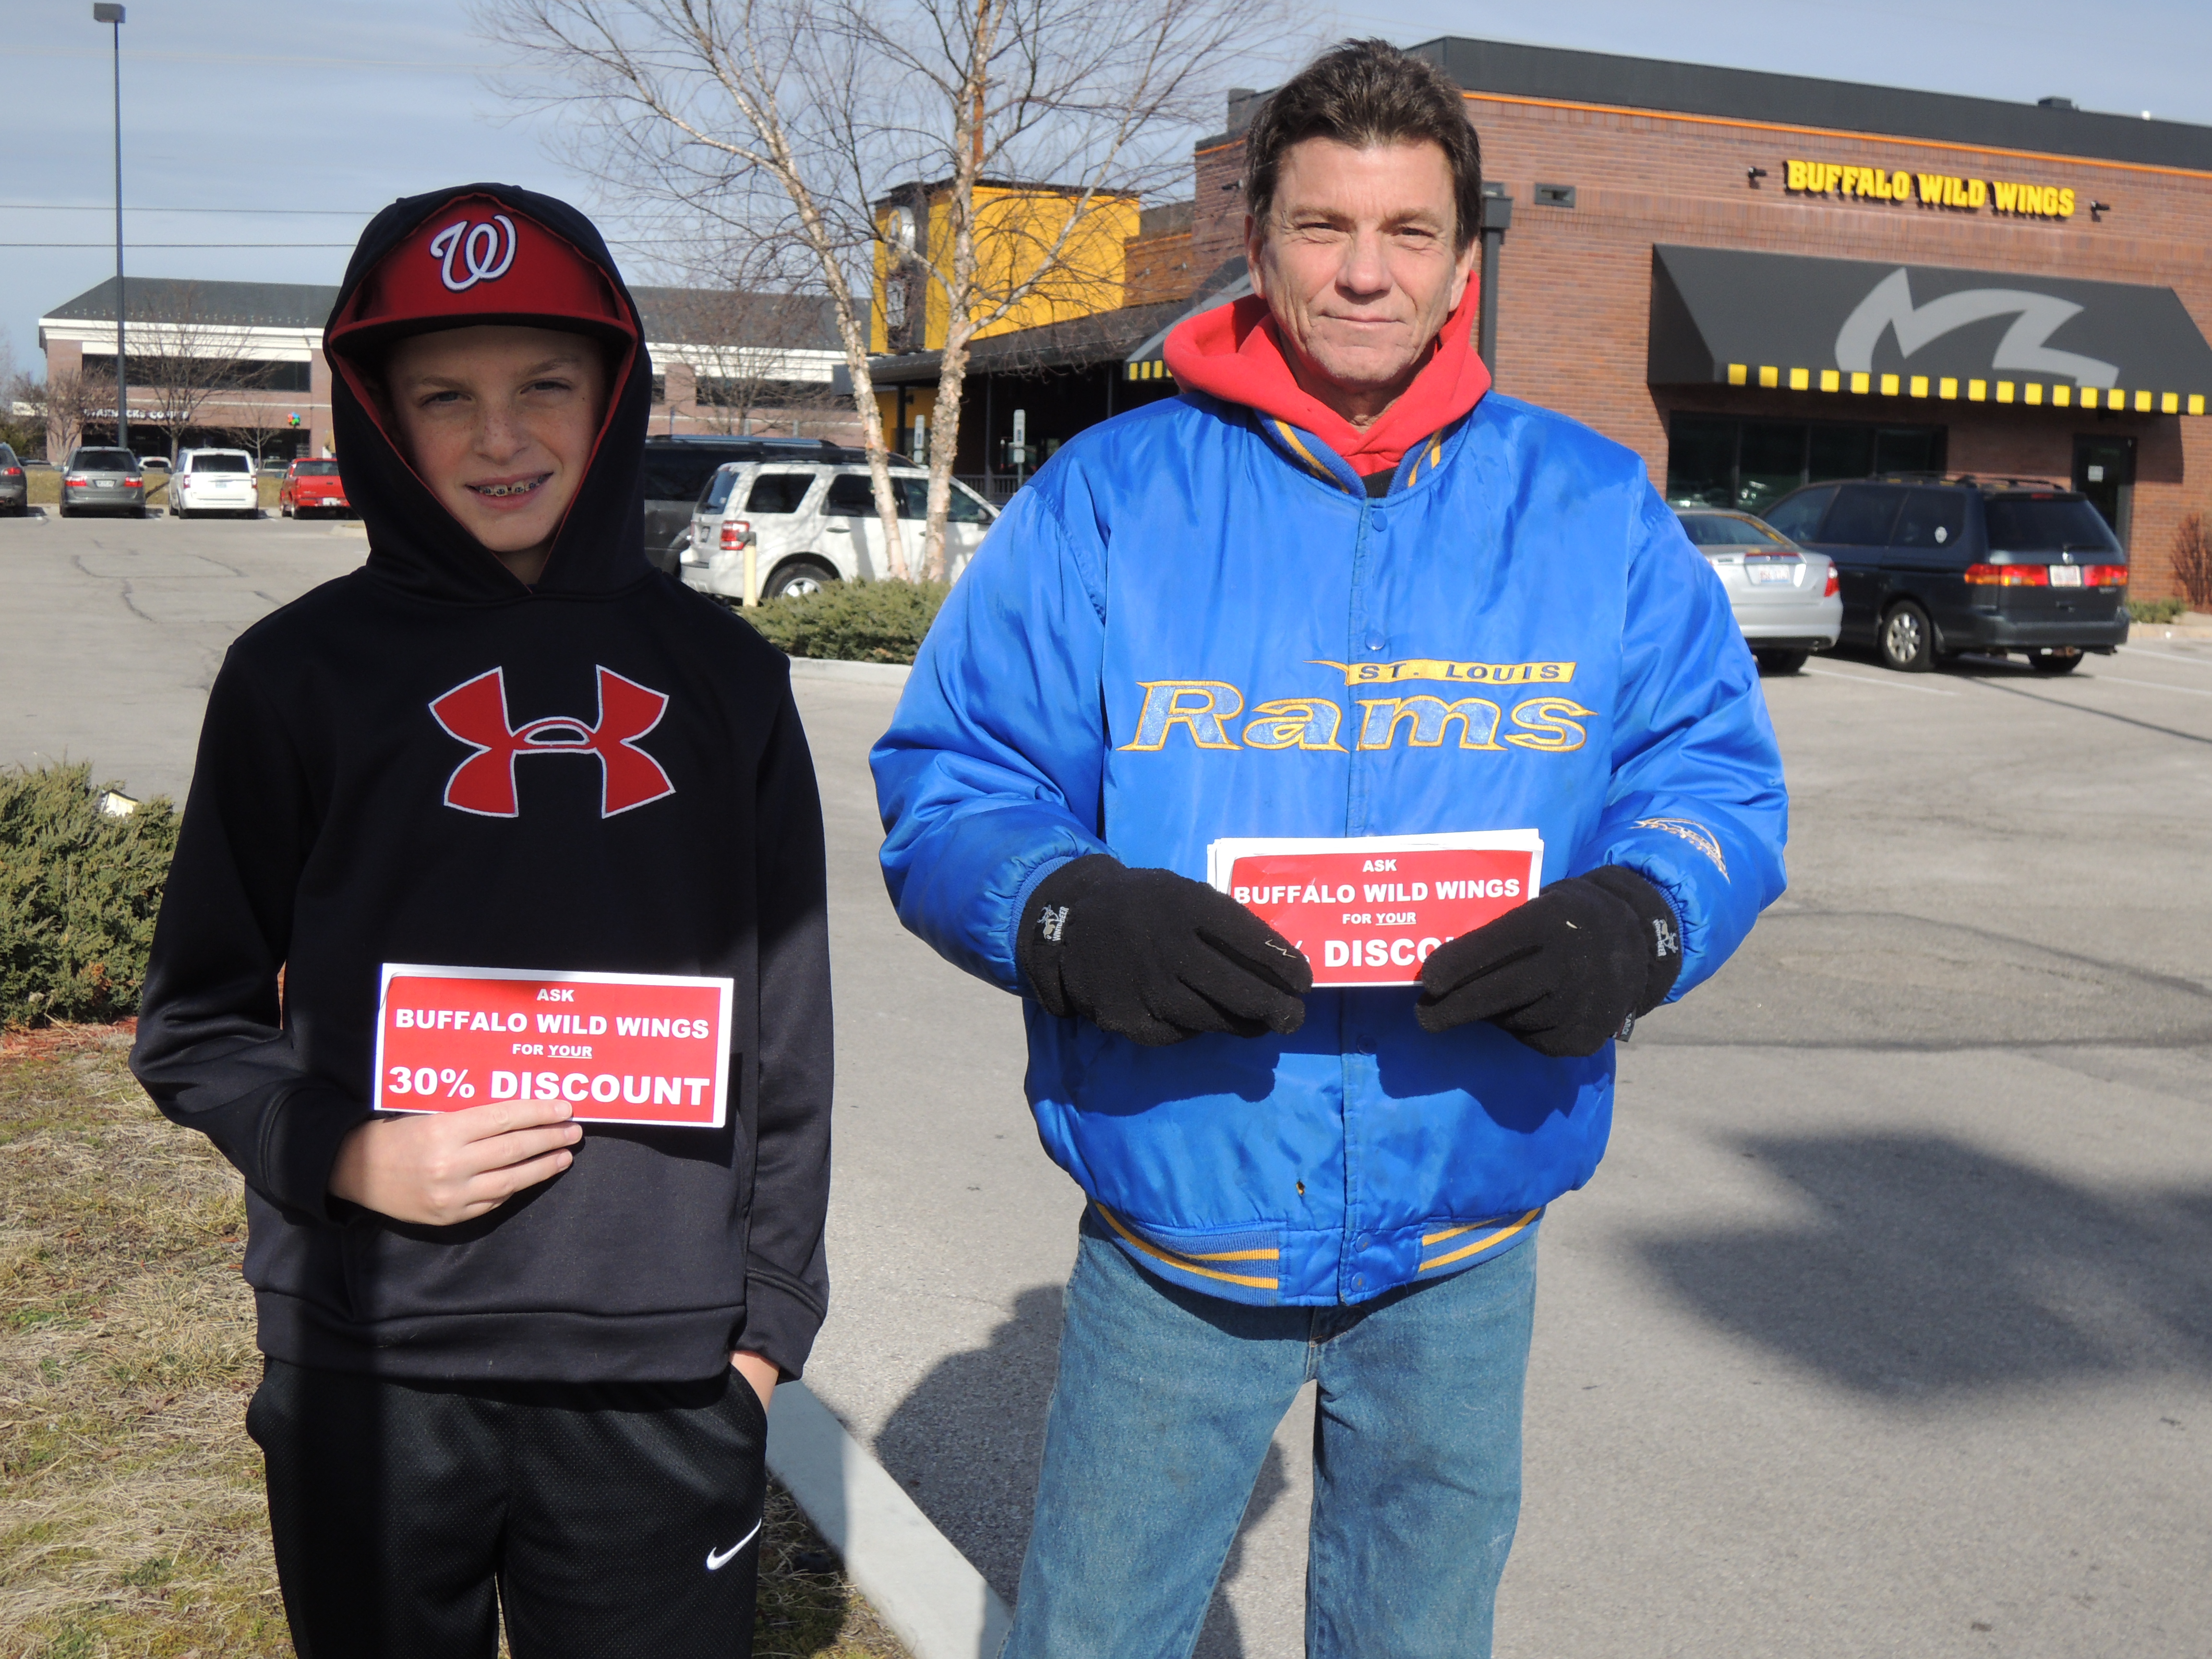 Raising public awareness to the issue, (LEFT PHOTO) Kyle Landwehr (left), the son of IBEW Local 1 Business Representative Ken Landwehr, and Lighting Maintenance Technician Darren Daniele handbilled customers pulling onto the parking lot of the chain's Chesterfield location